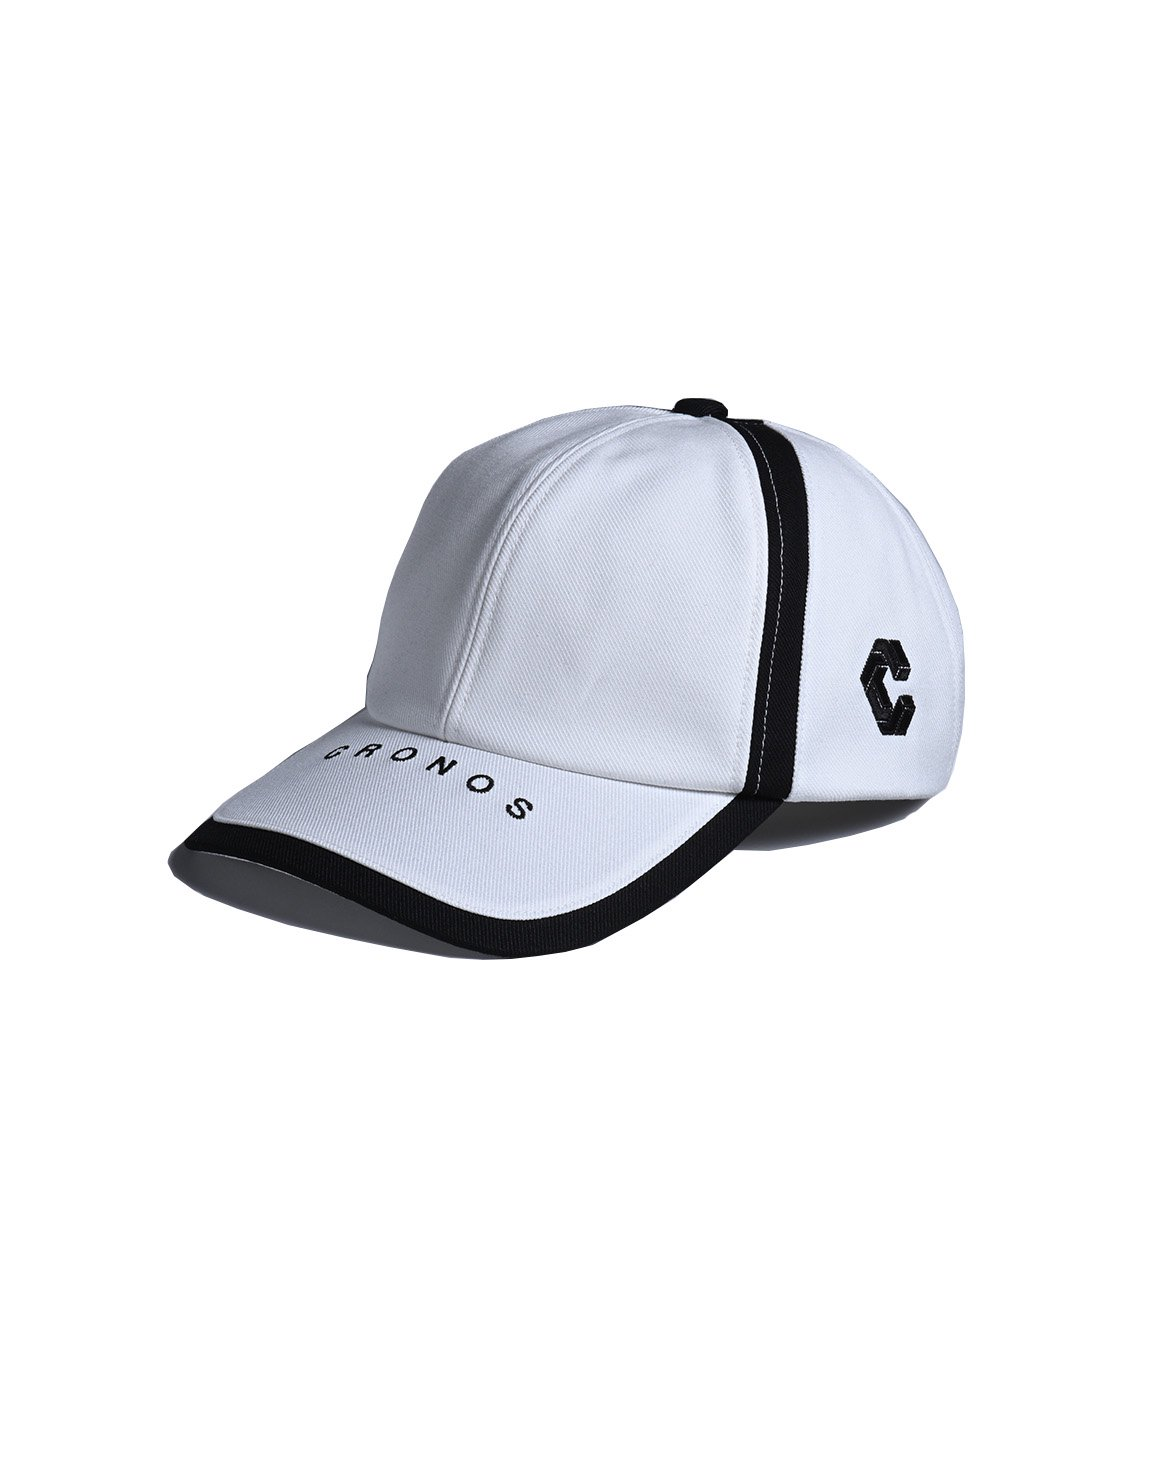 <img class='new_mark_img1' src='https://img.shop-pro.jp/img/new/icons1.gif' style='border:none;display:inline;margin:0px;padding:0px;width:auto;' />CRONOS LINE TAPE CAP 【WHITE】